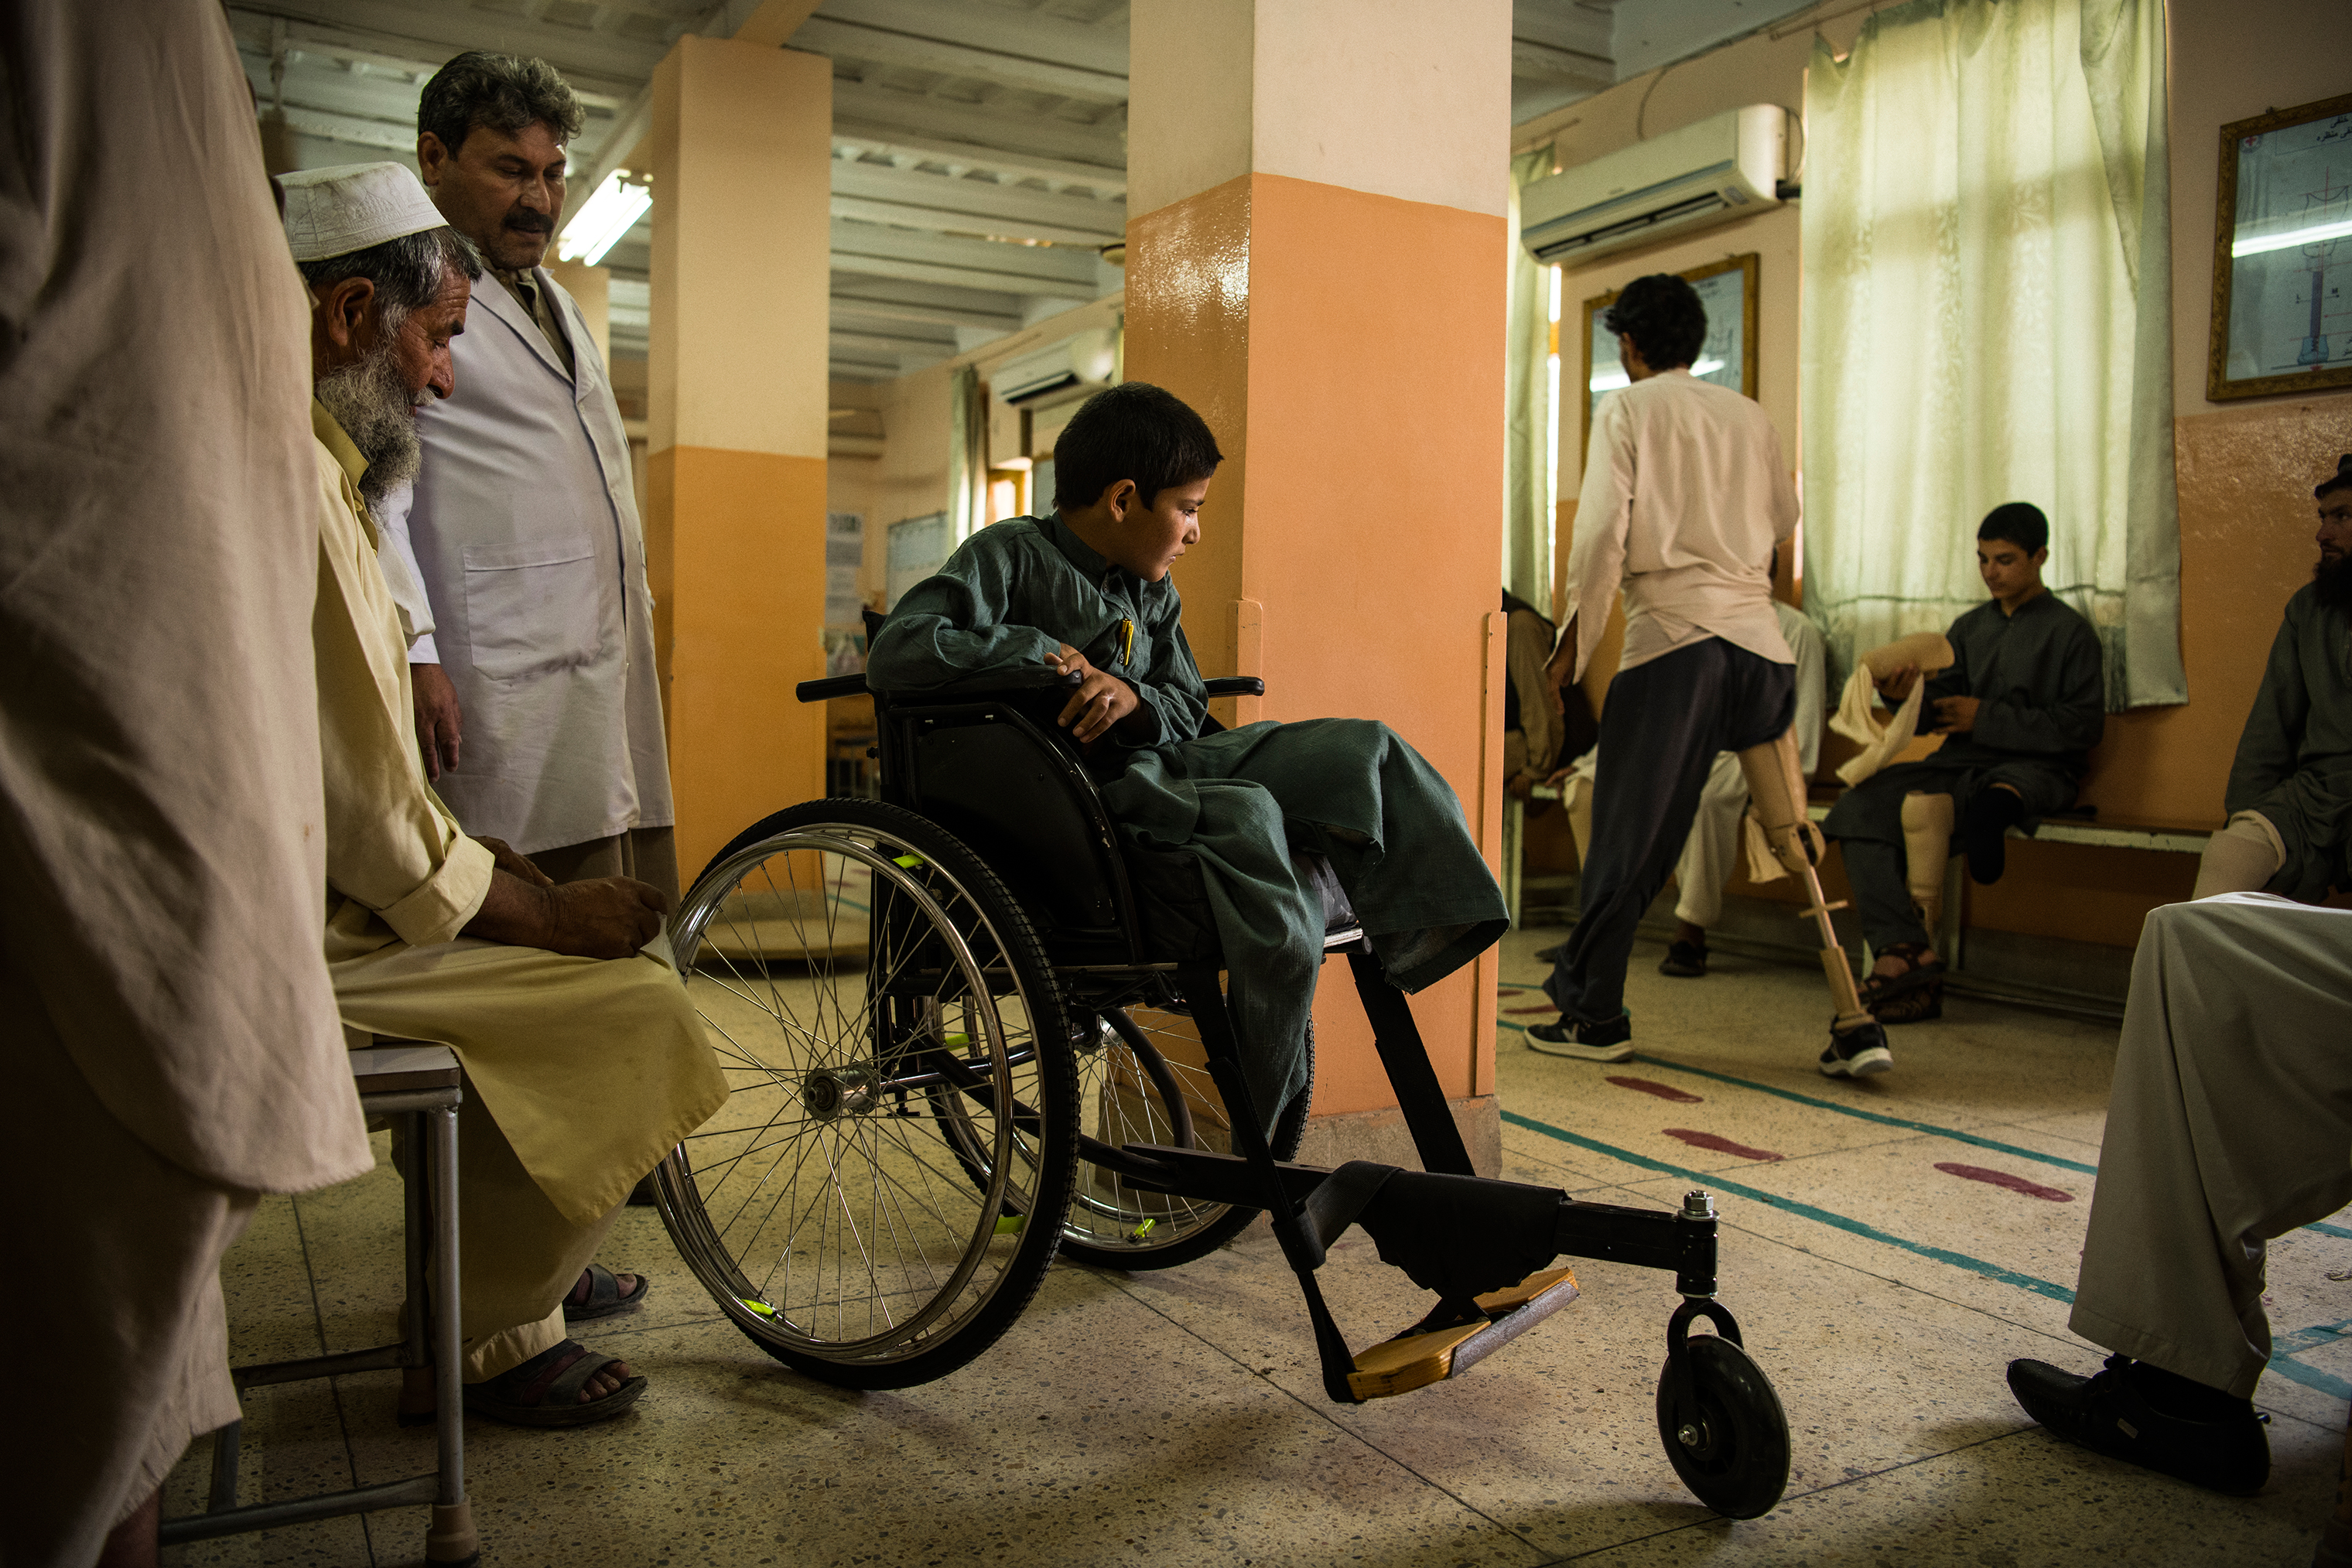 Abdul Rashid watches a patient practice with a prosthetic leg at the orthopedic center on June 27.